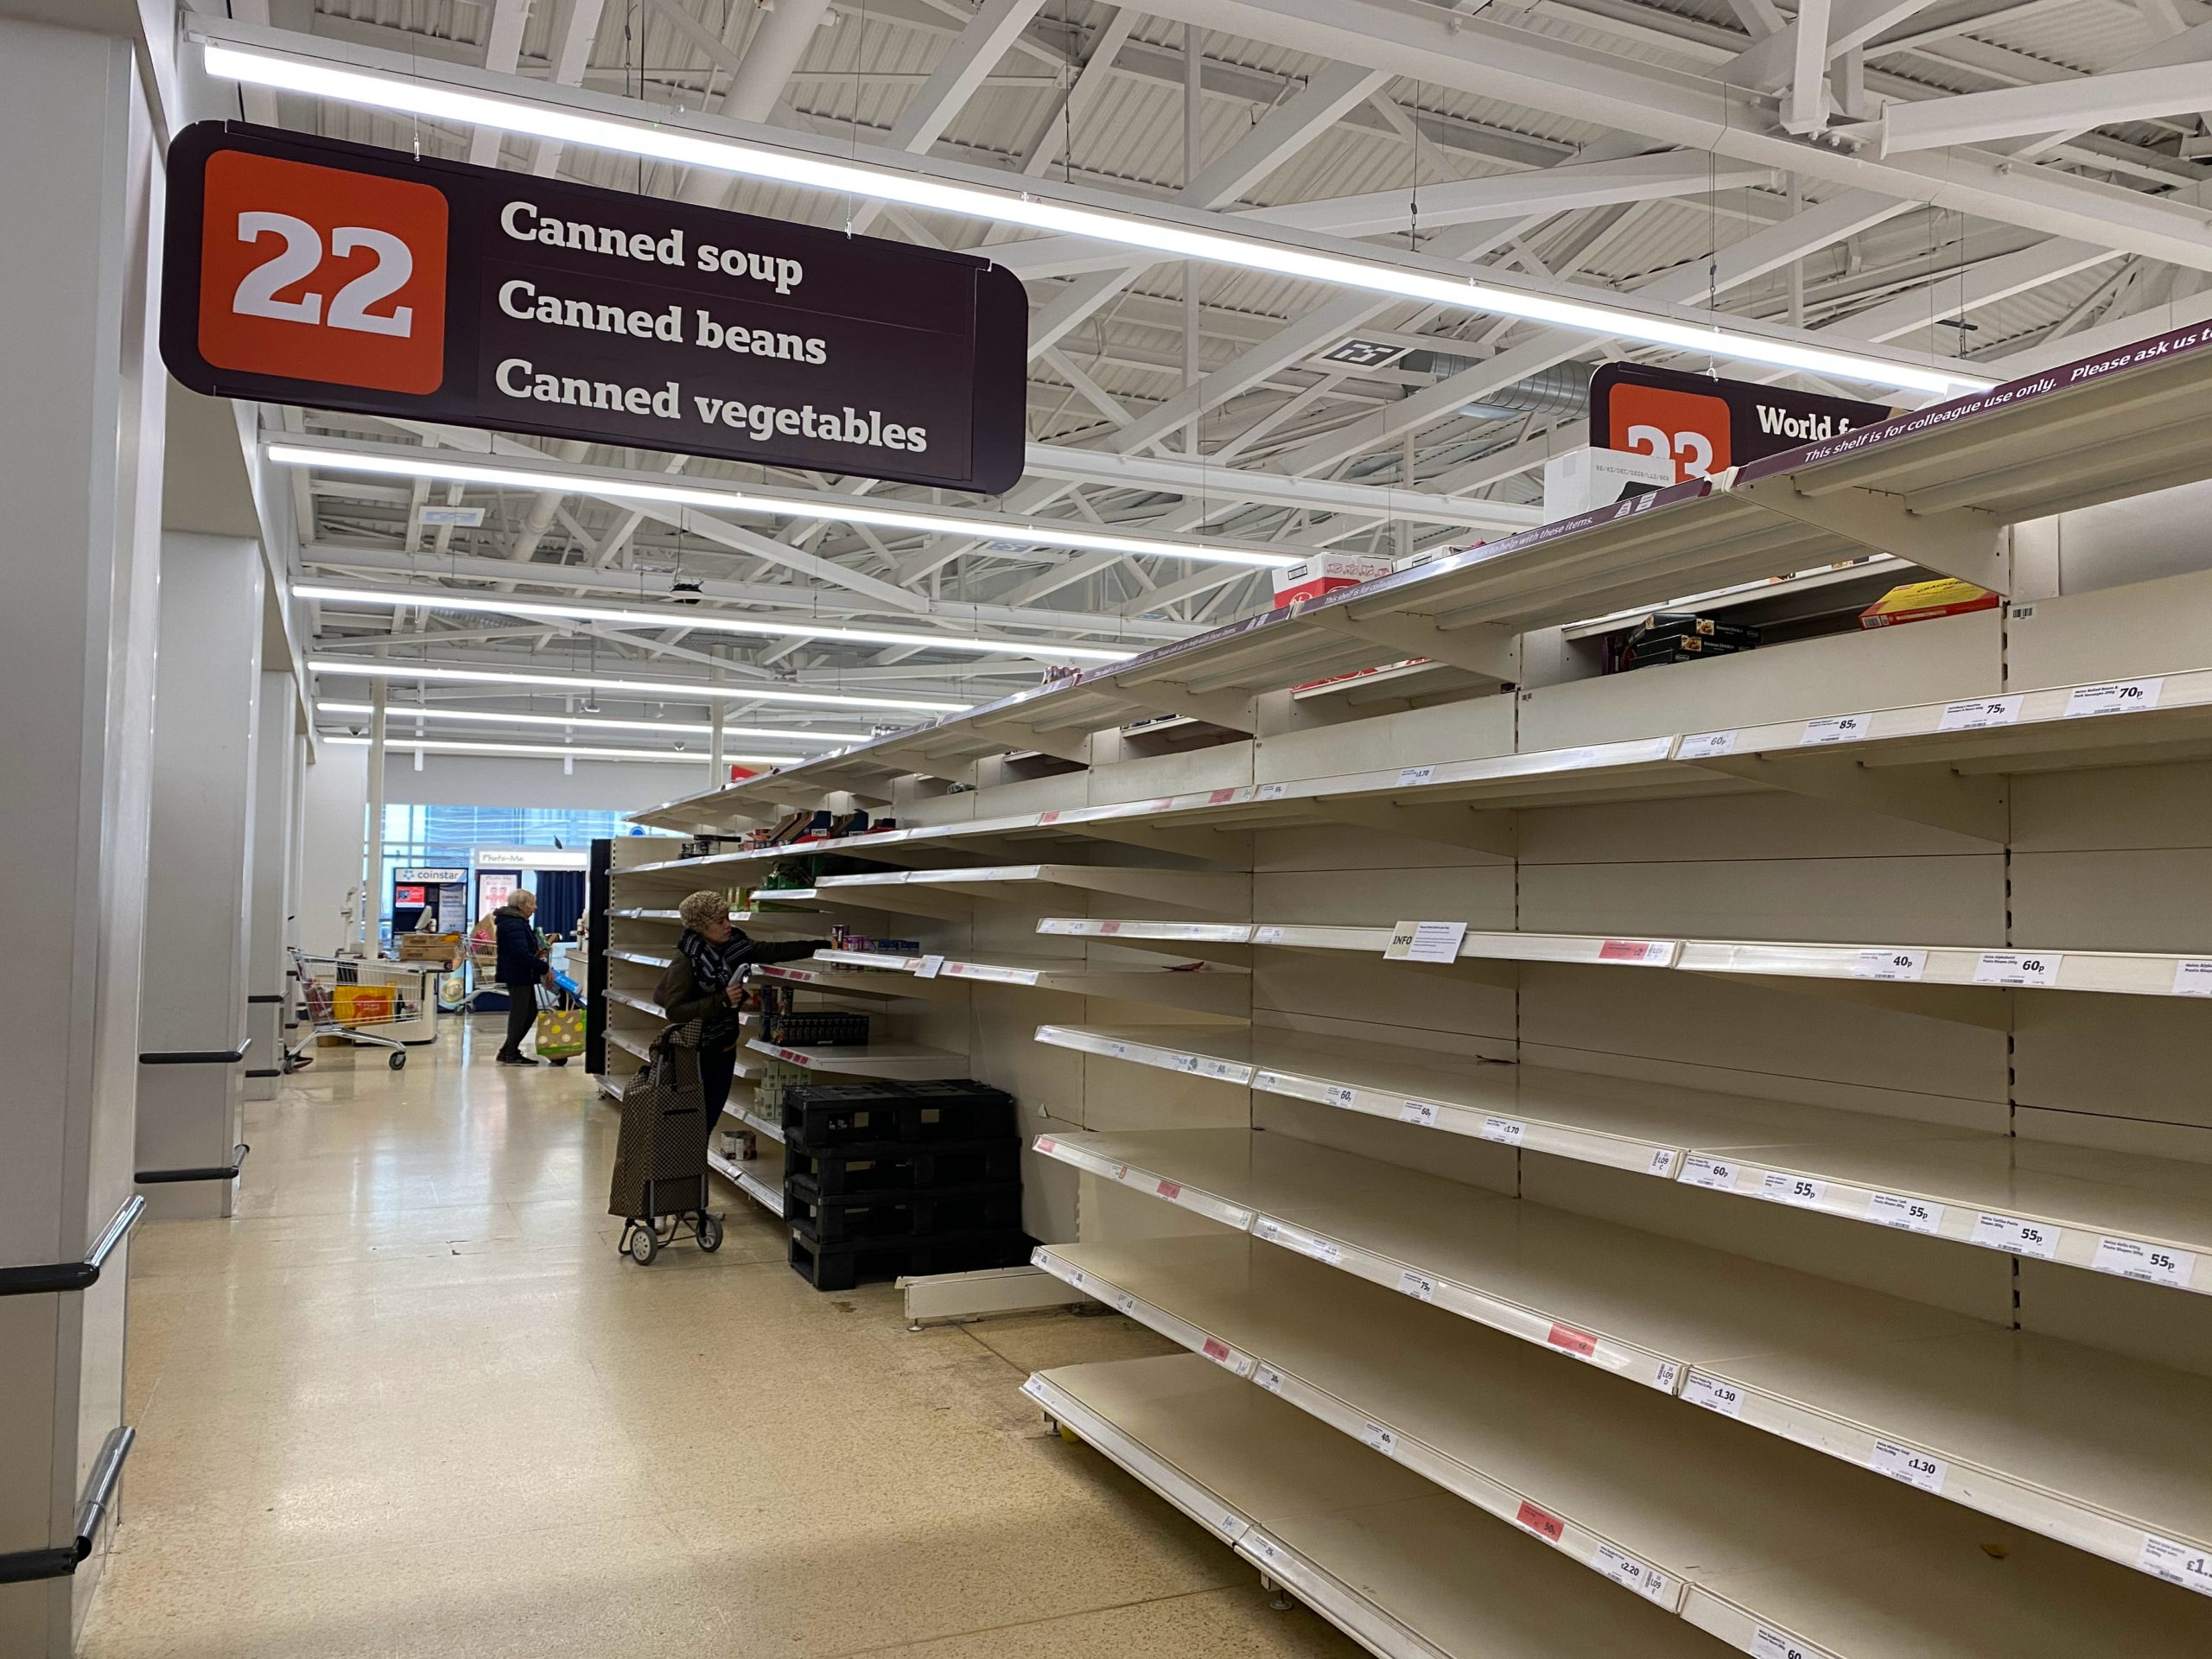 Aisle in supermarket with near empty shelves